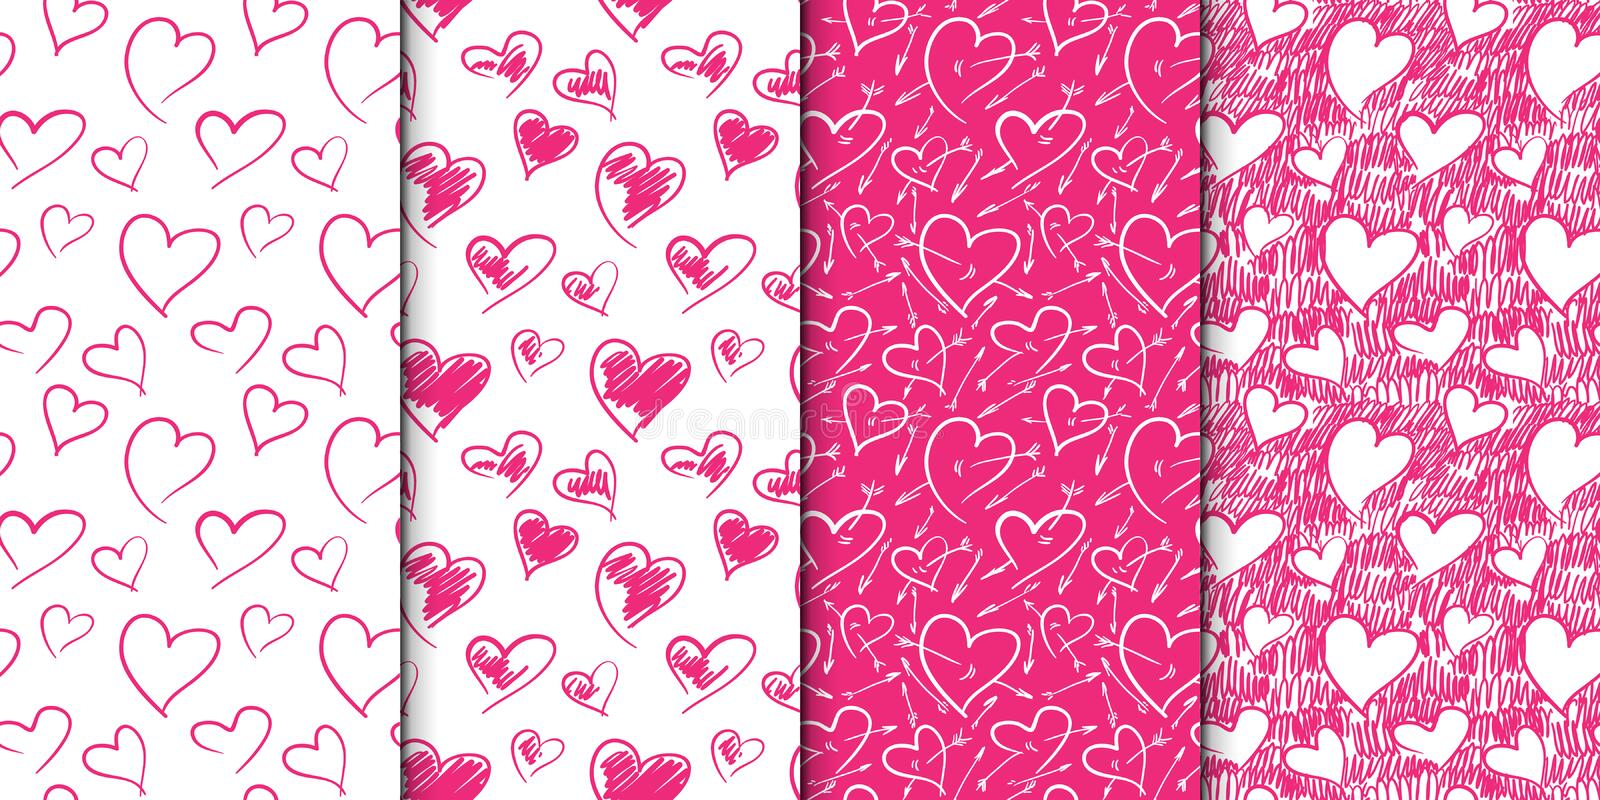 Abstract seamless heart pattern set. Hand drawn illustration. Pink and white. Set of repeating backgrounds with doodle stock illustration